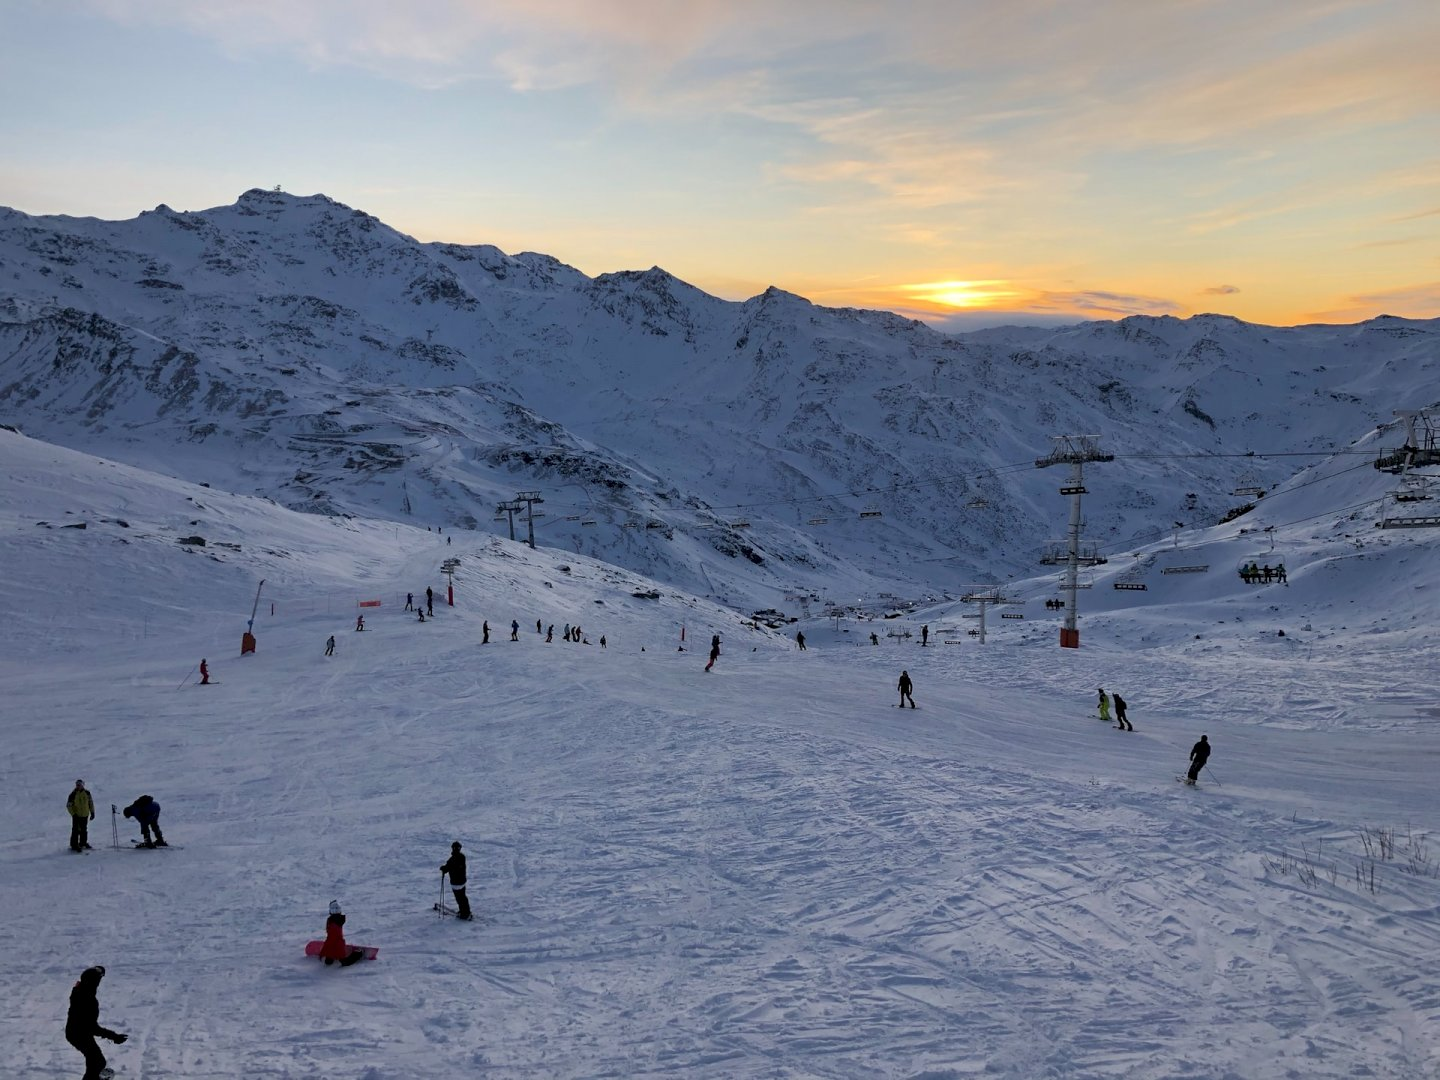 "<font face=""TheGreatOutdoors-Rough-Regular"" style="""" size=""7"" color=""#ffffff"">wintersport in val thorens</font>"